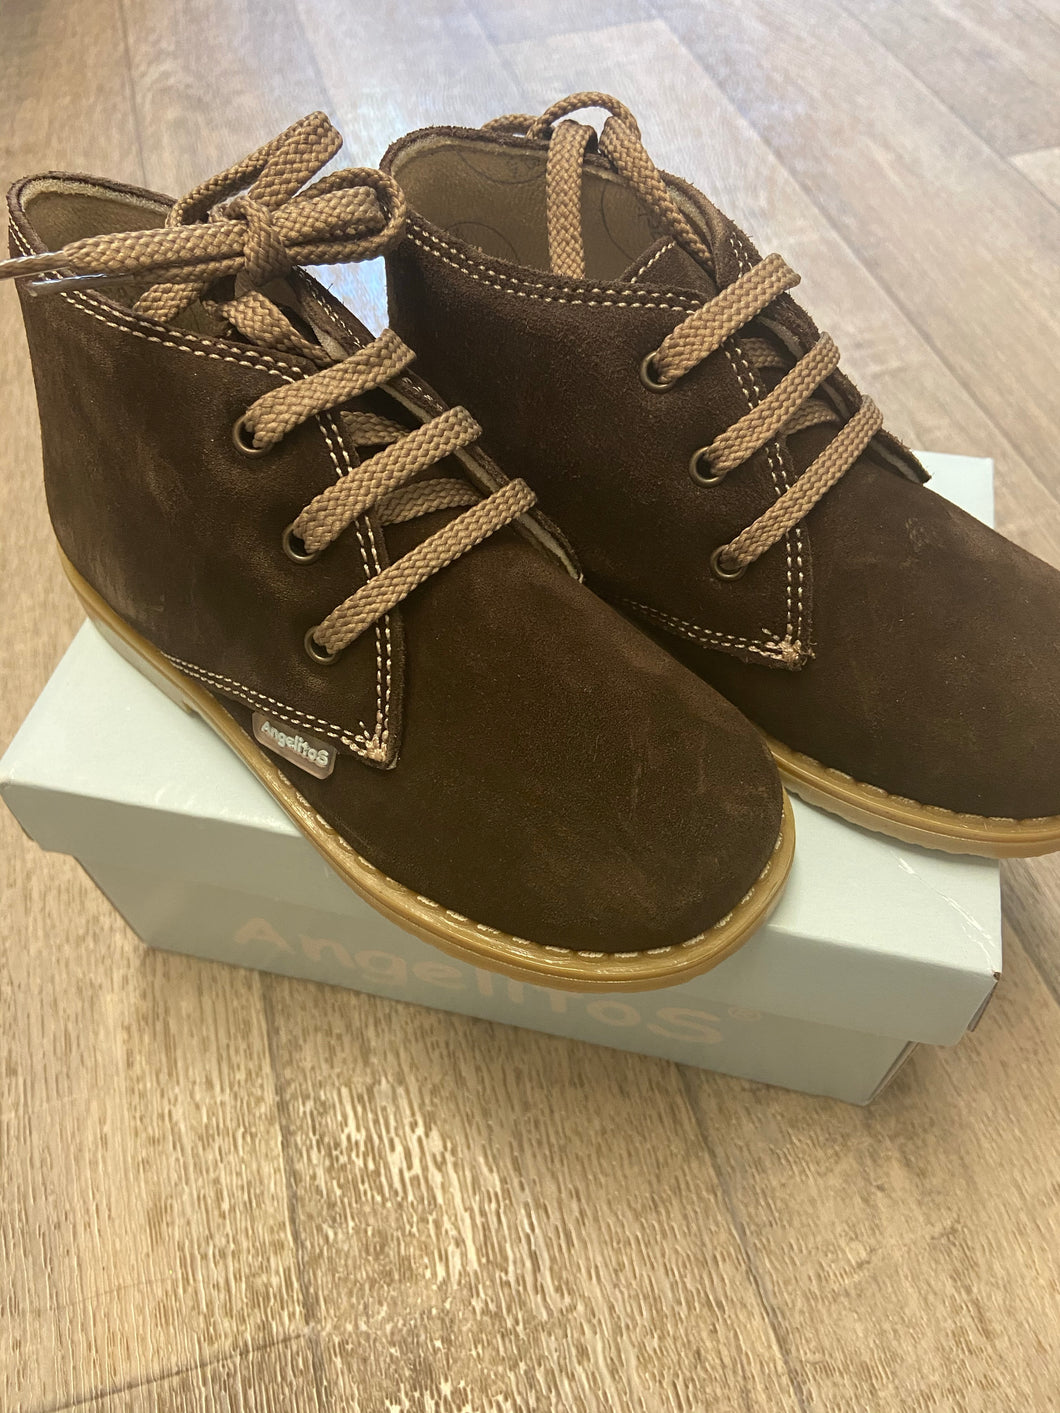 Clearance shoe brown size 26 (uk 8.5)